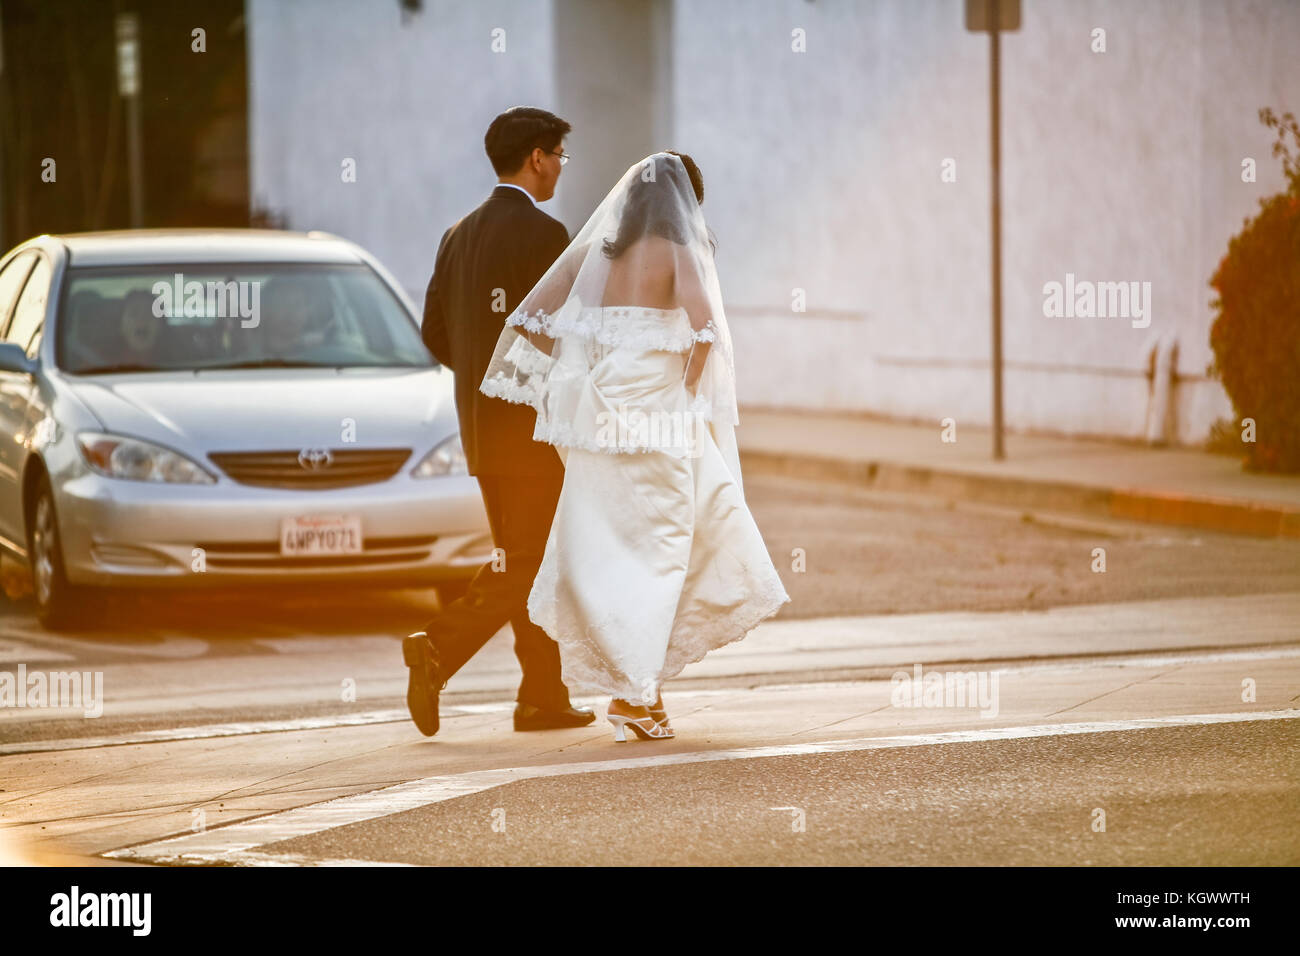 A newly wed couple walks across street and stops traffic - Stock Image